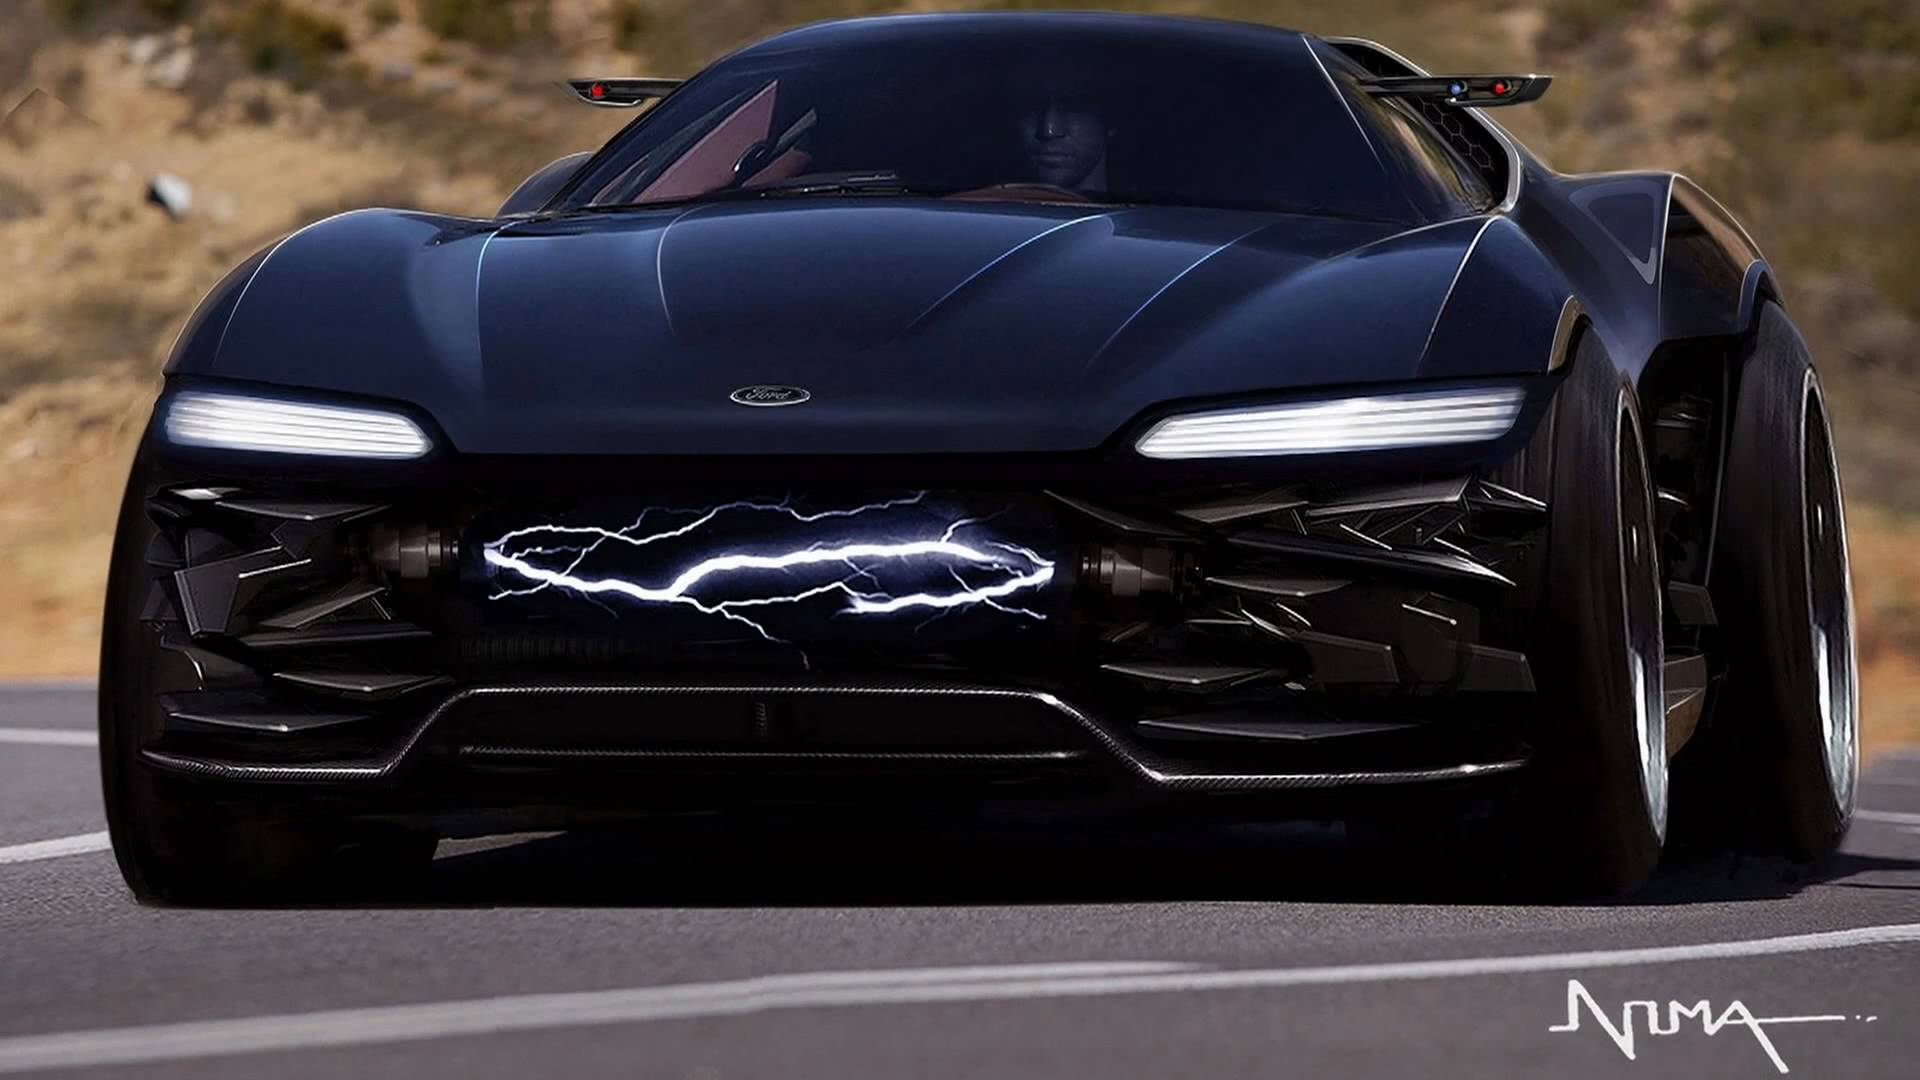 2011 Ford Mad Max Concept